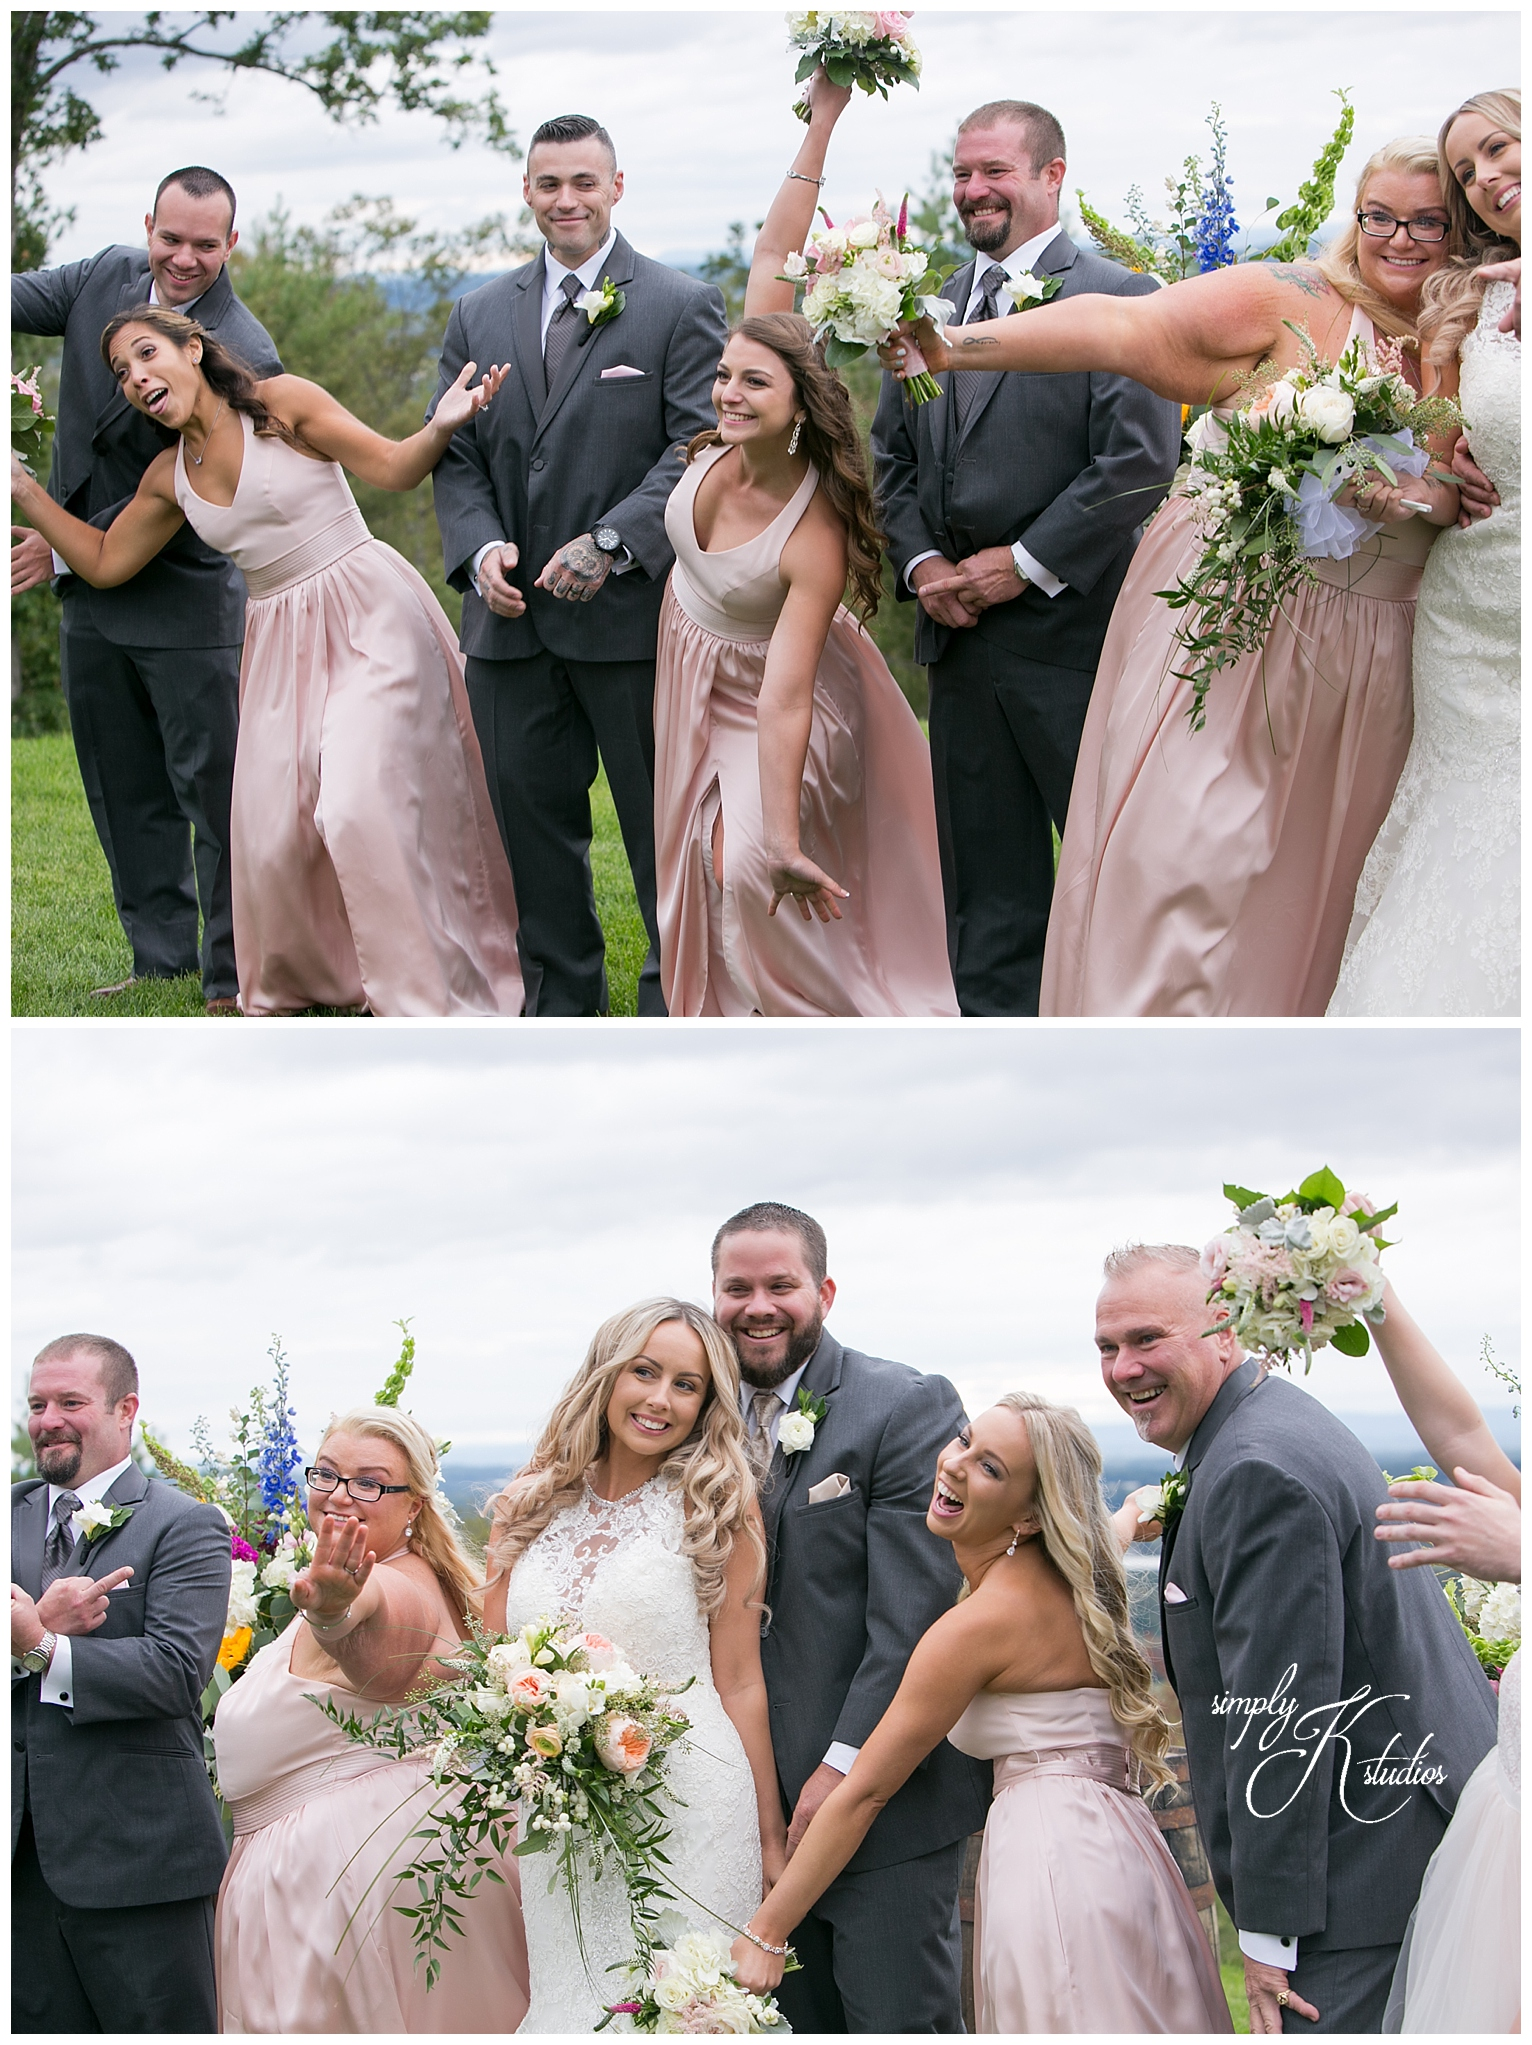 Candid Wedding Photography in CT.jpg